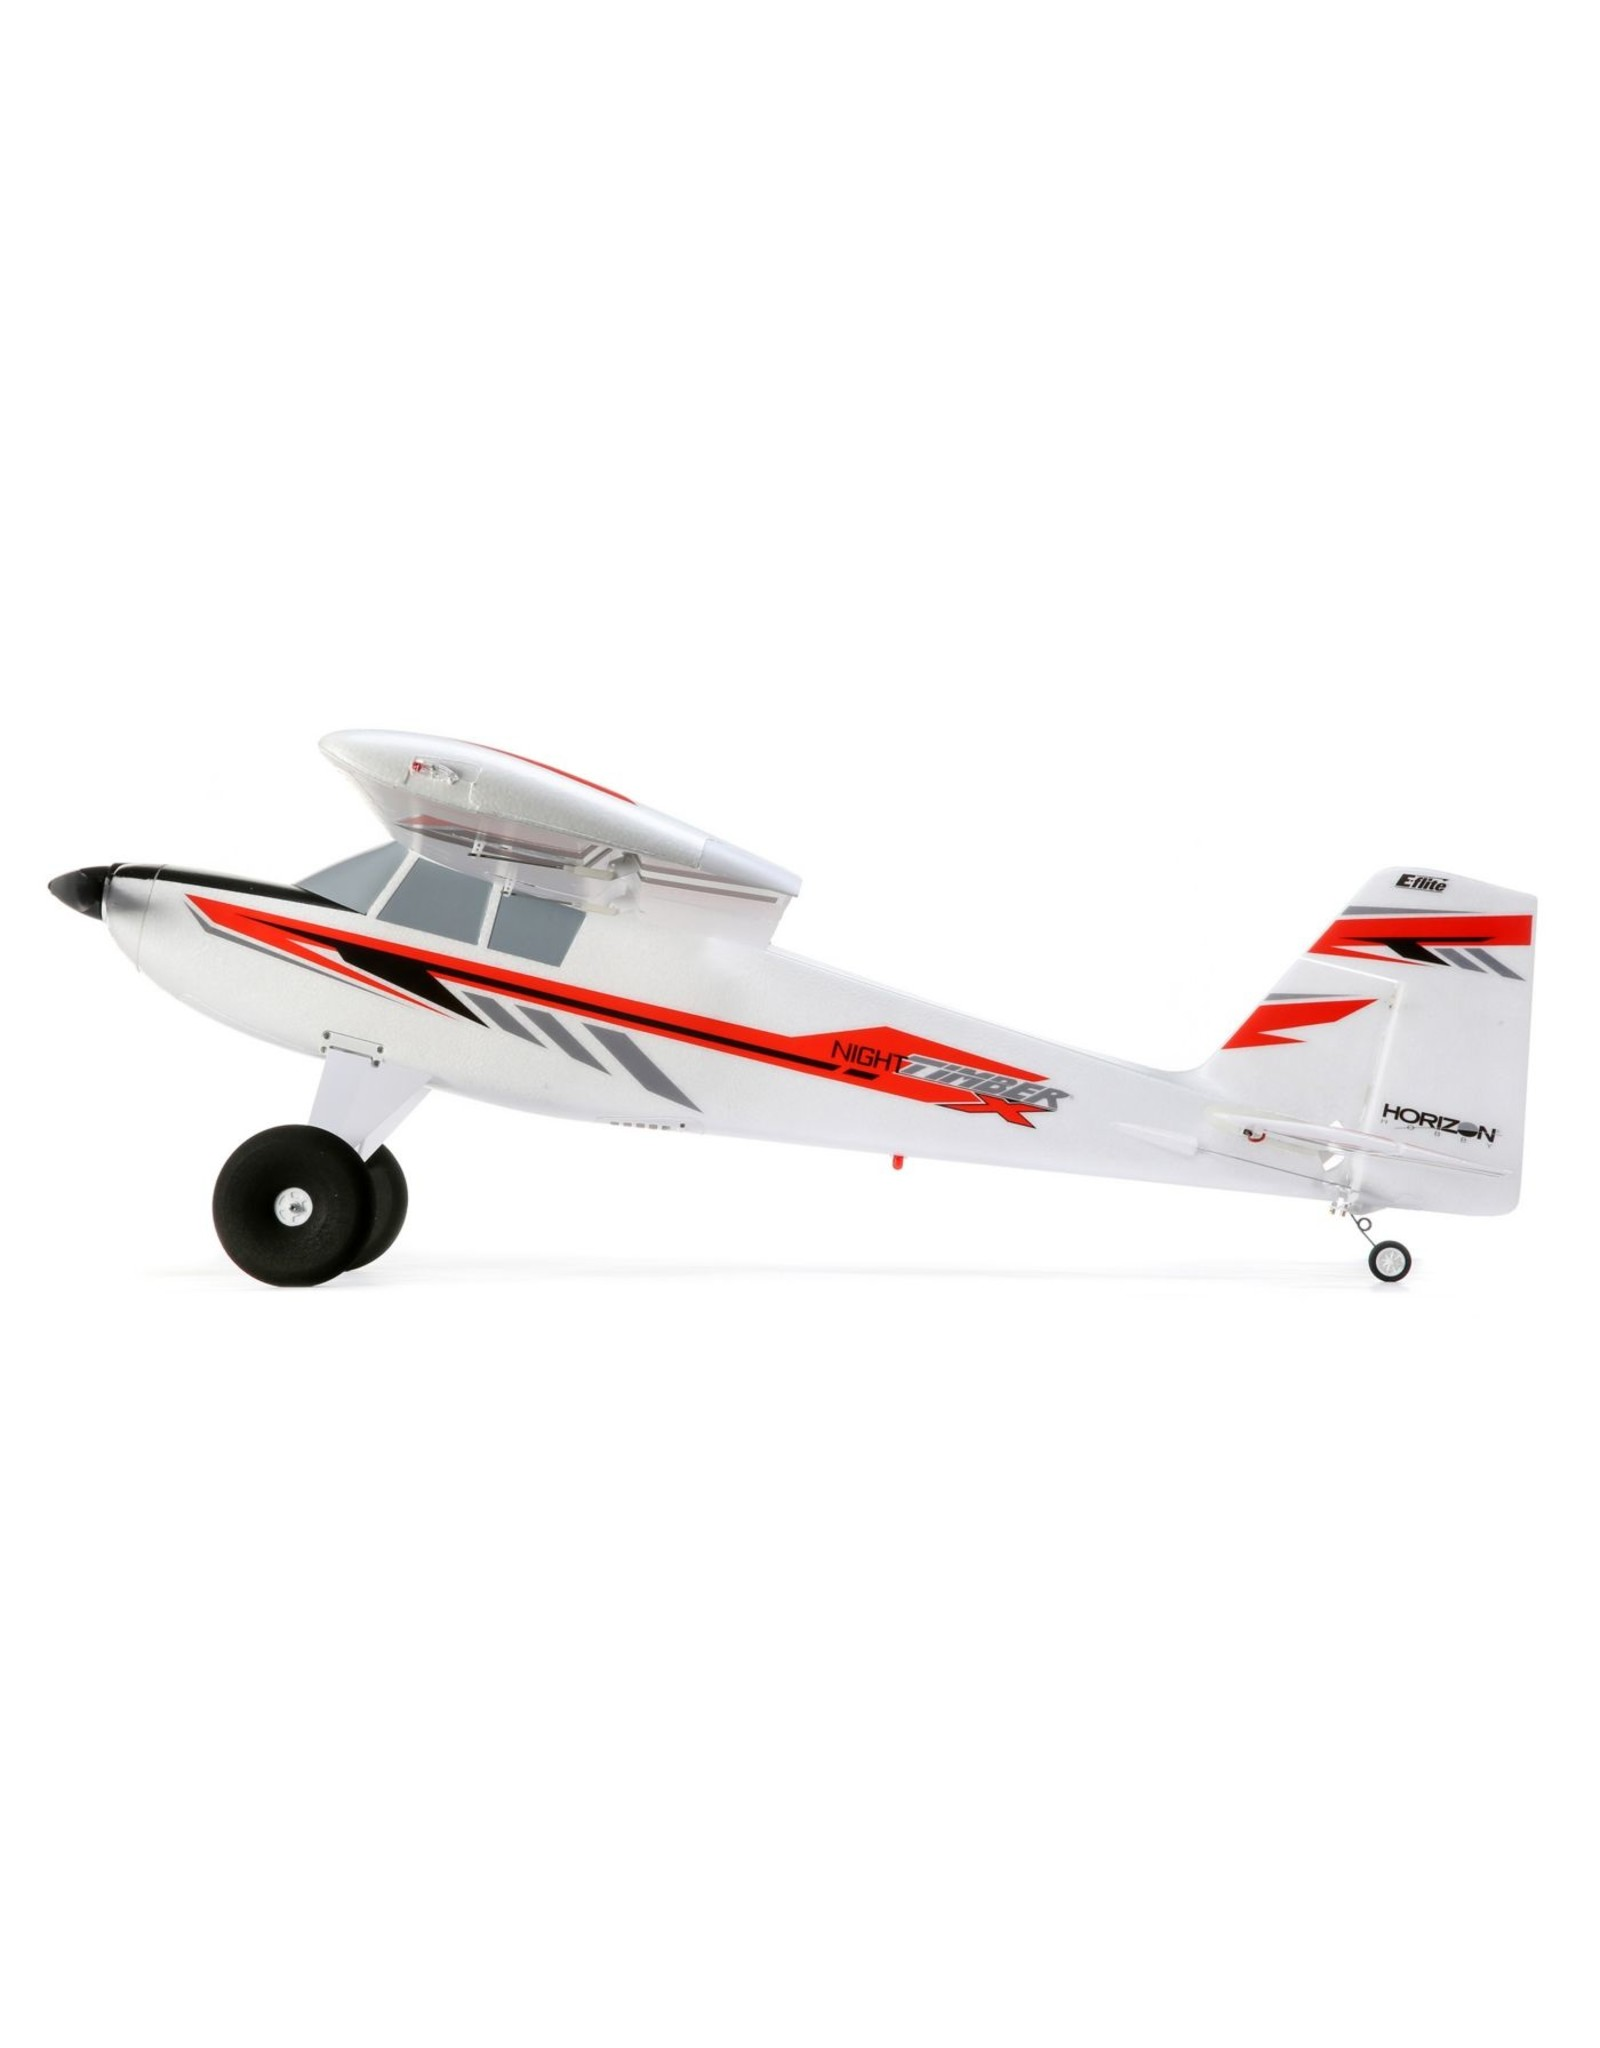 E-flite 13850 - Night Timber X 1.2M BNF Basic with AS3X & SAFE Select